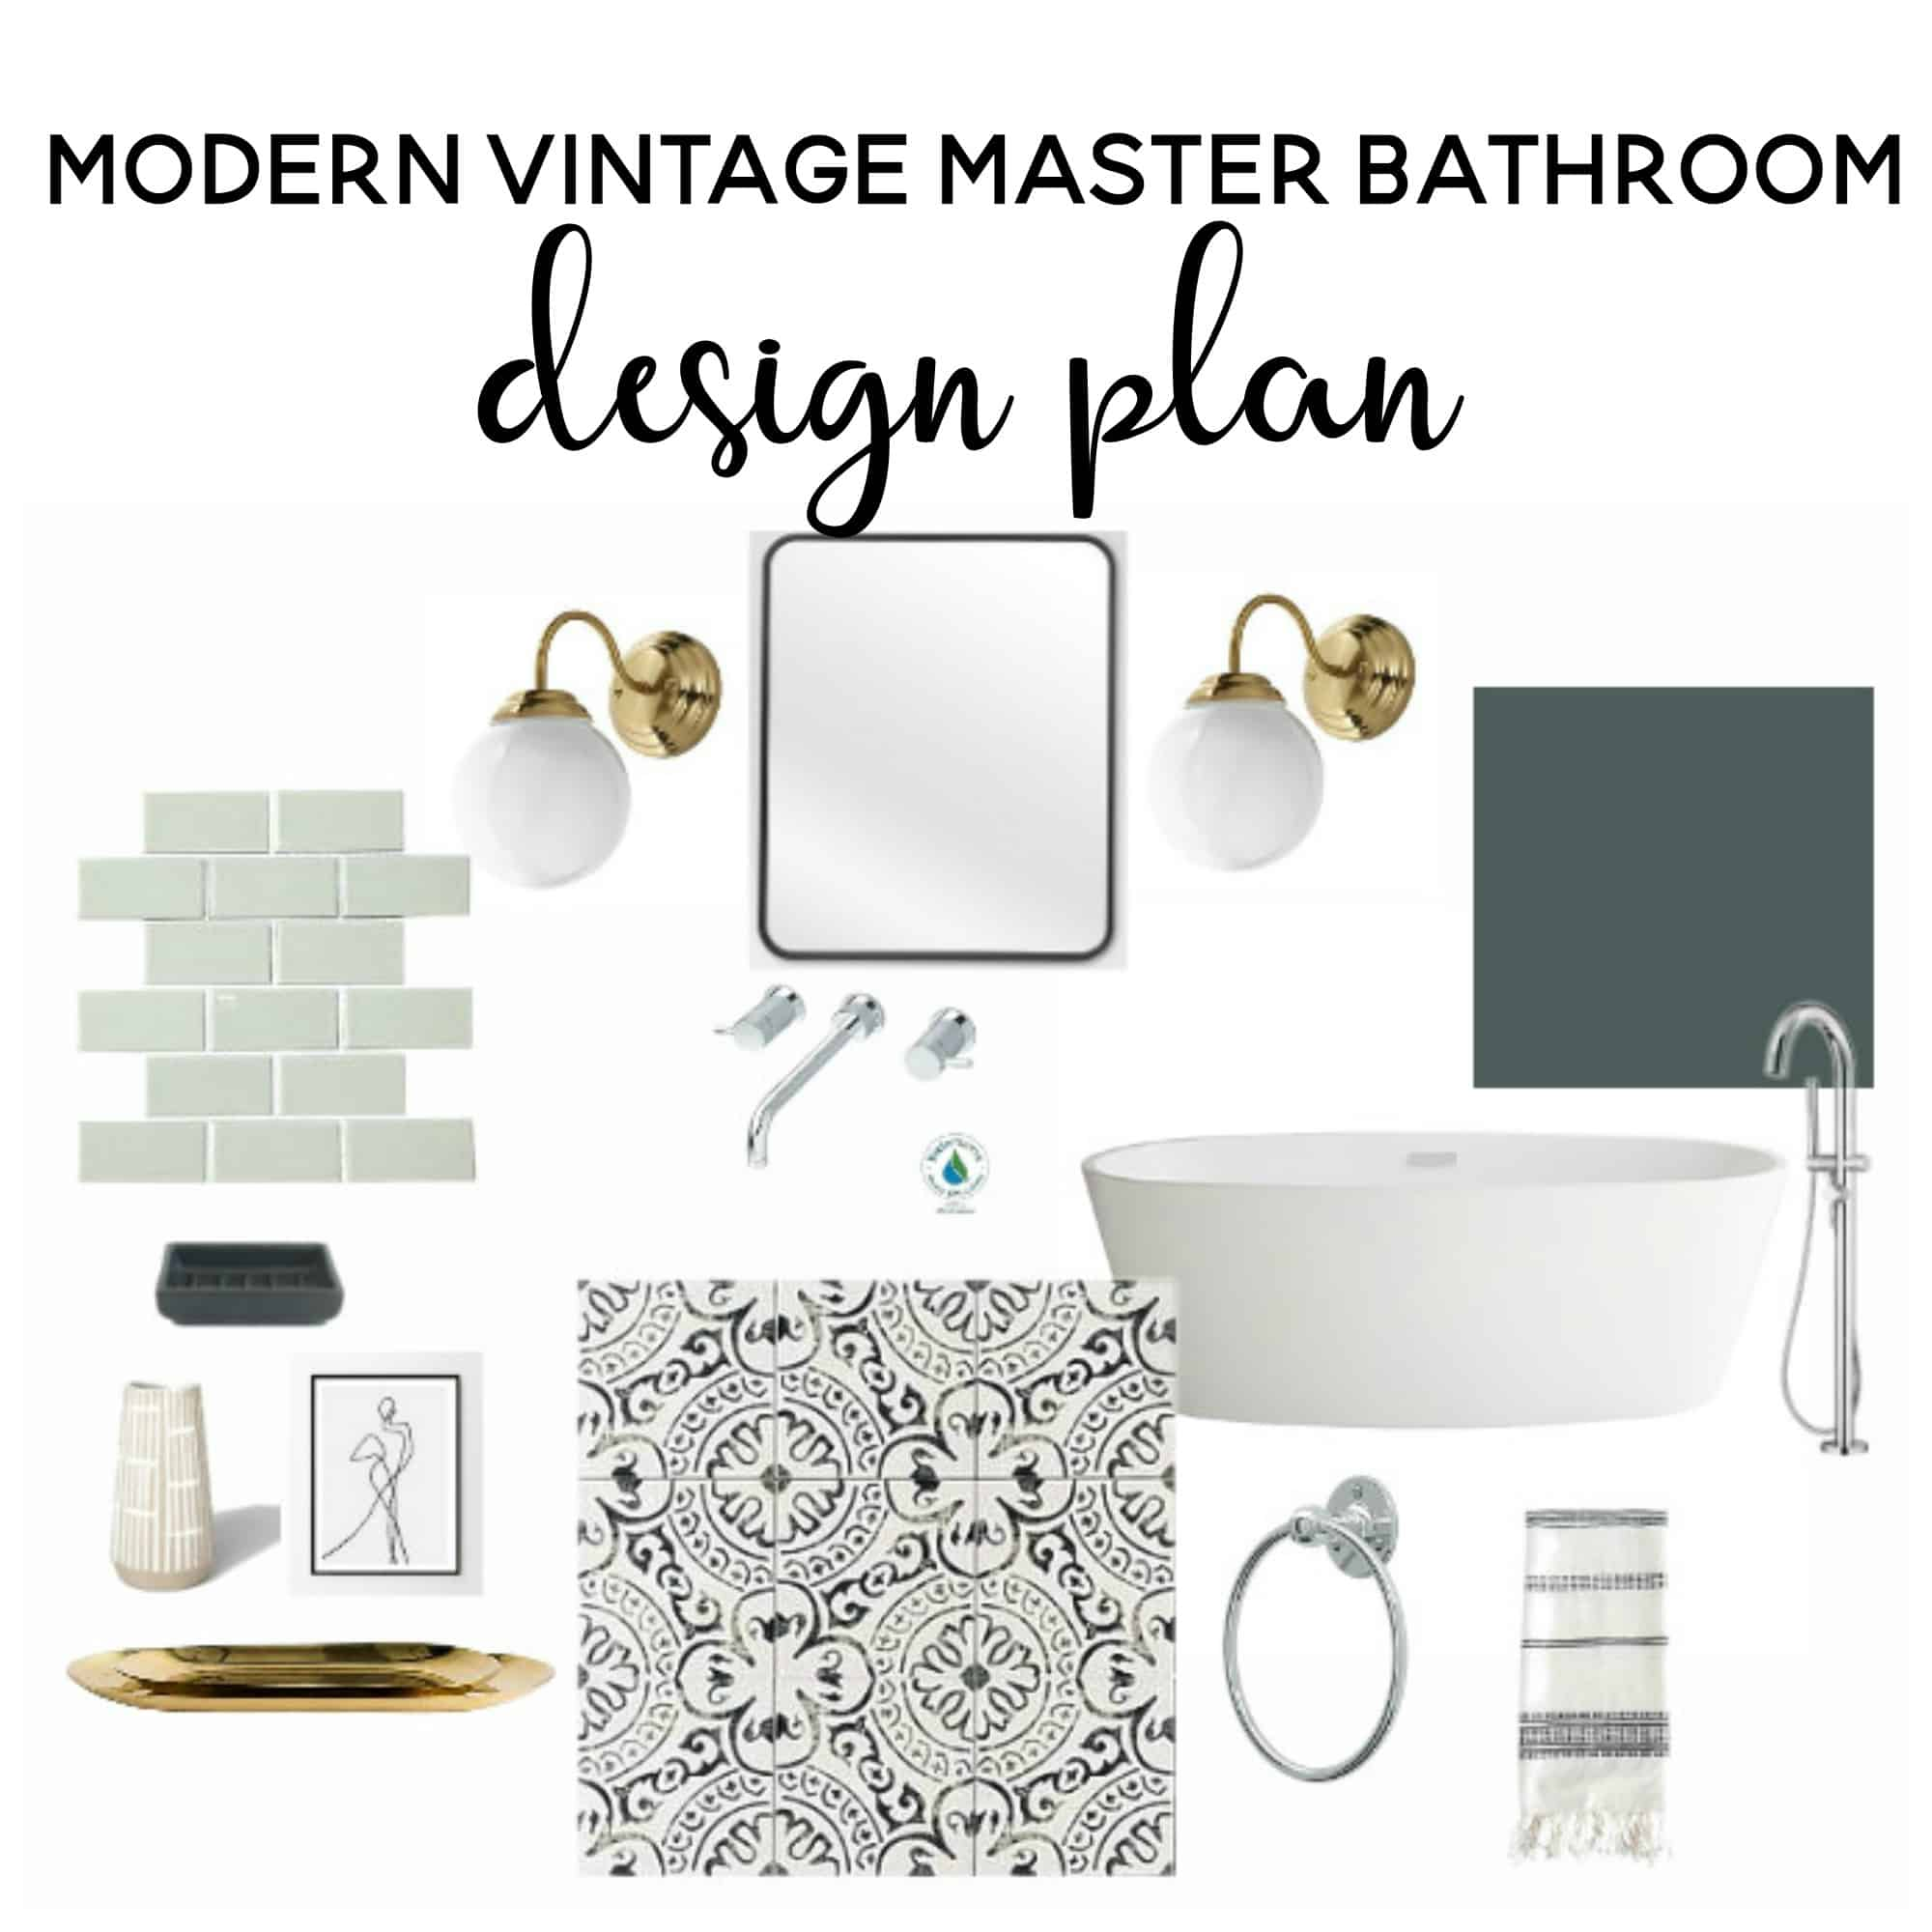 modern vintage master bathroom design plan | bathroom ideas | bathroom remodel | bathroom decor | master bathroom remodel | renovating on a budget | modern vintage bathroom | bathroom design ideas | bathroom design small | attic bathroom | bathroom ideas